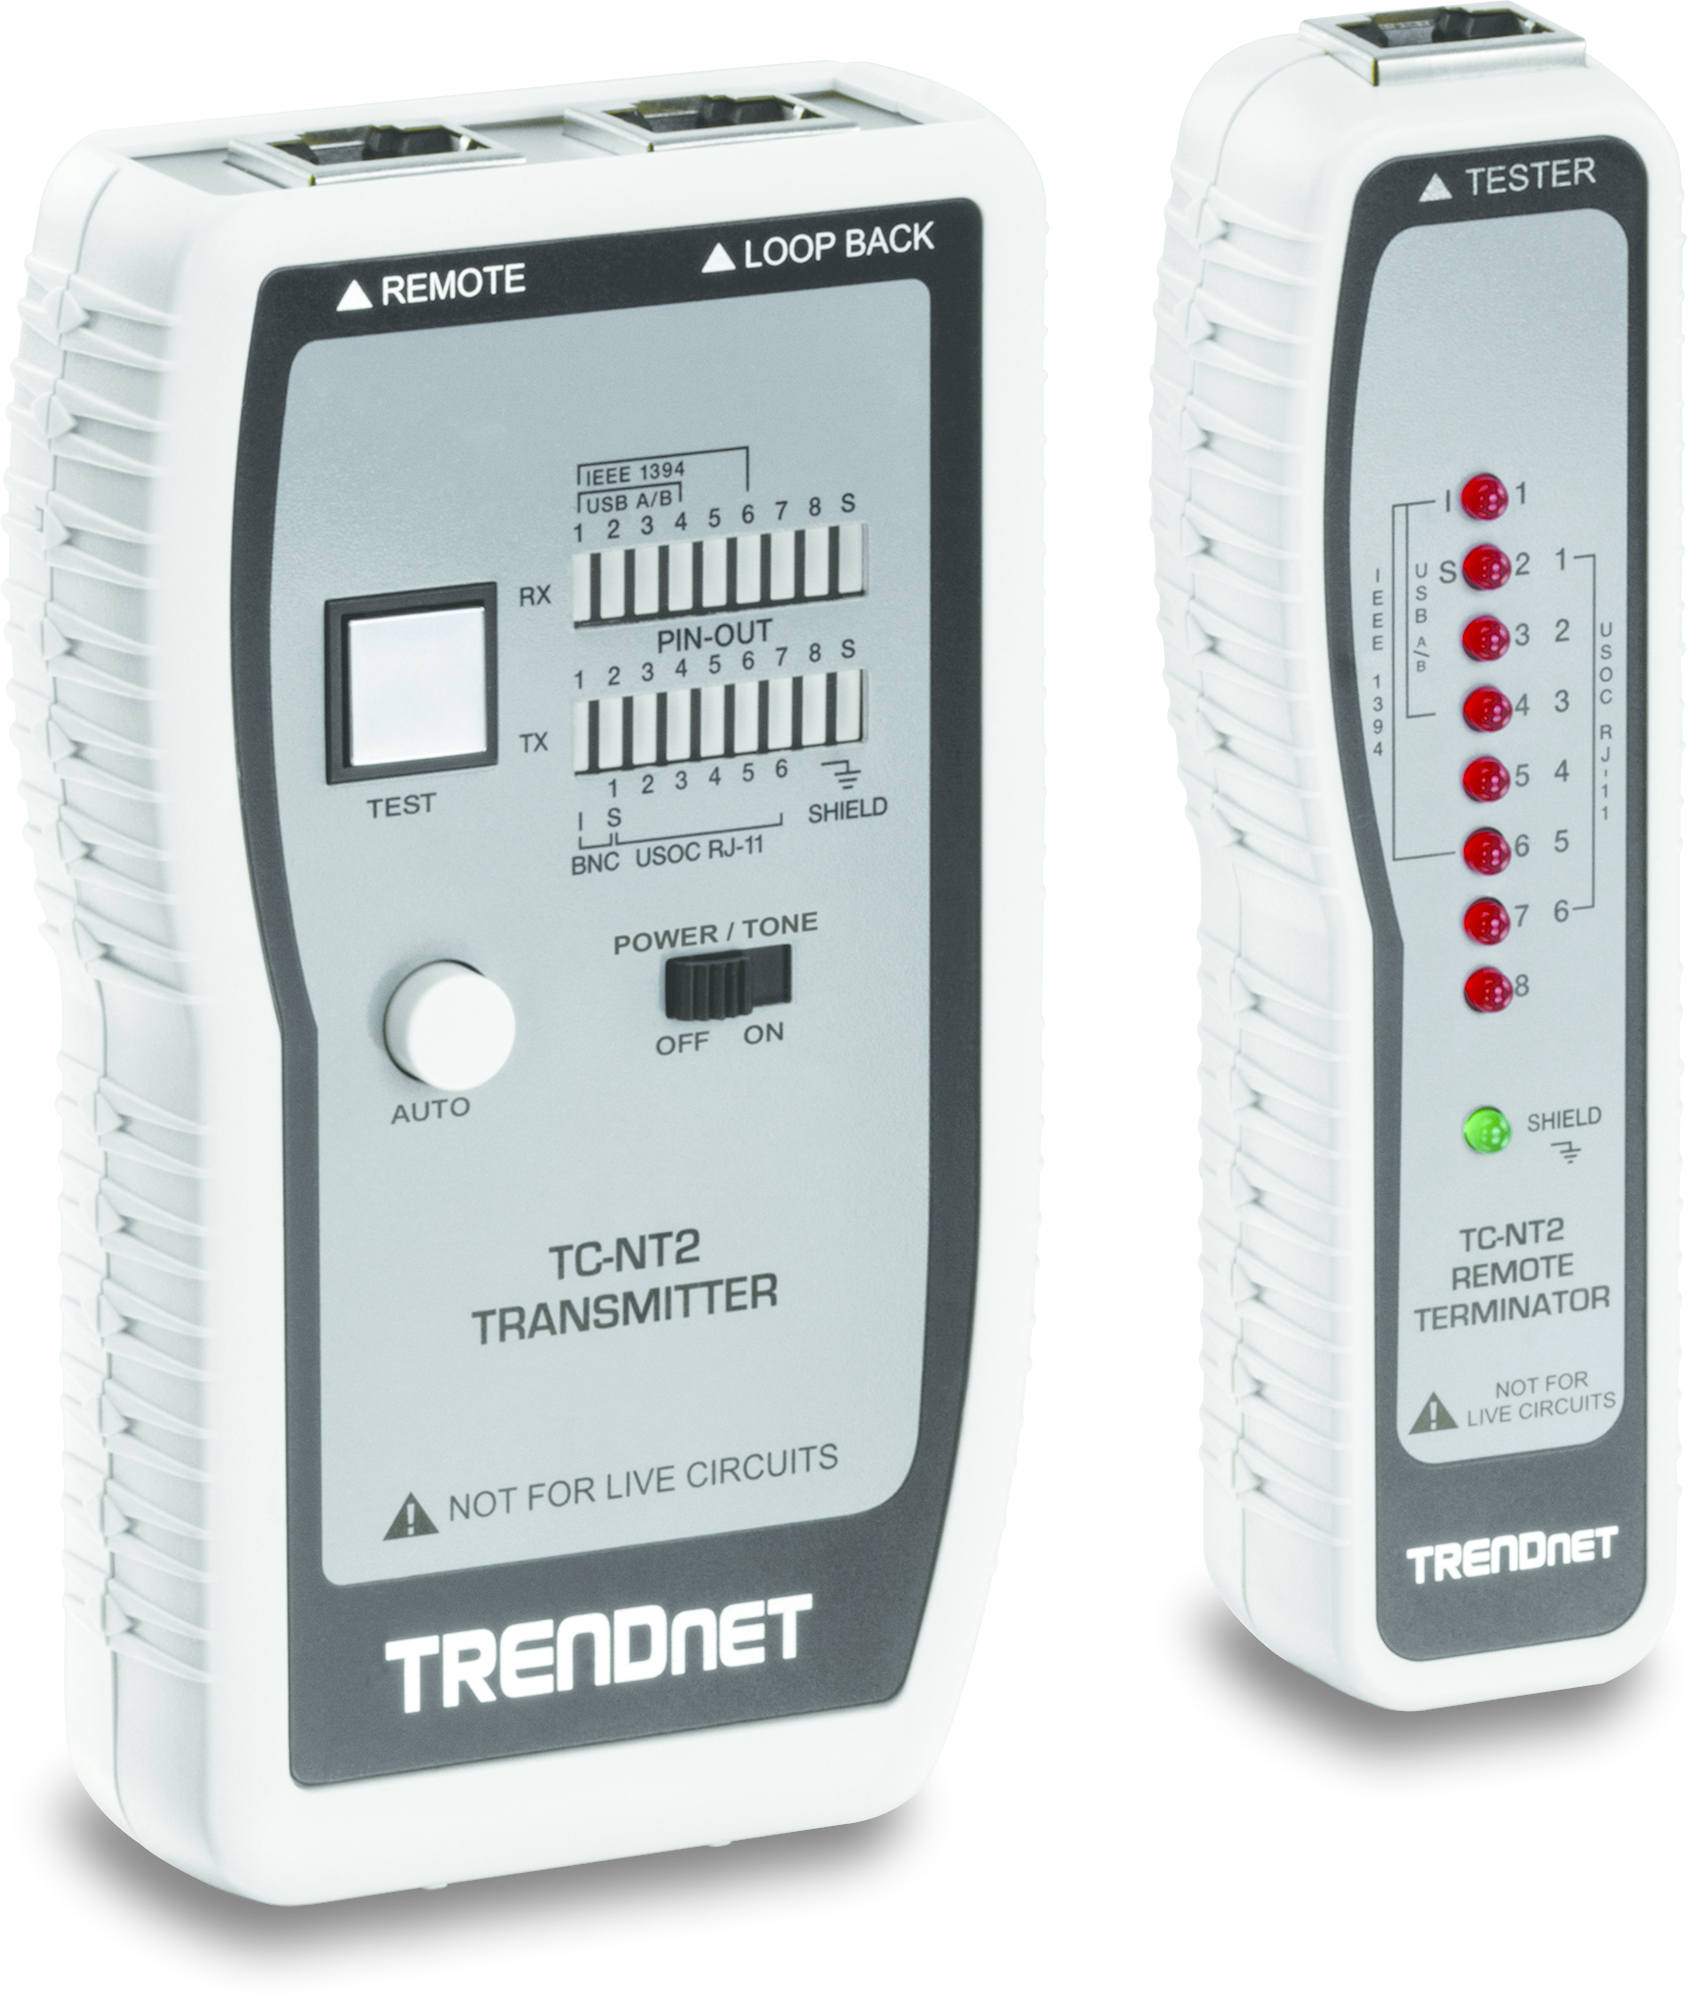 Trendnet TC-NT2 network analyser Blue,White